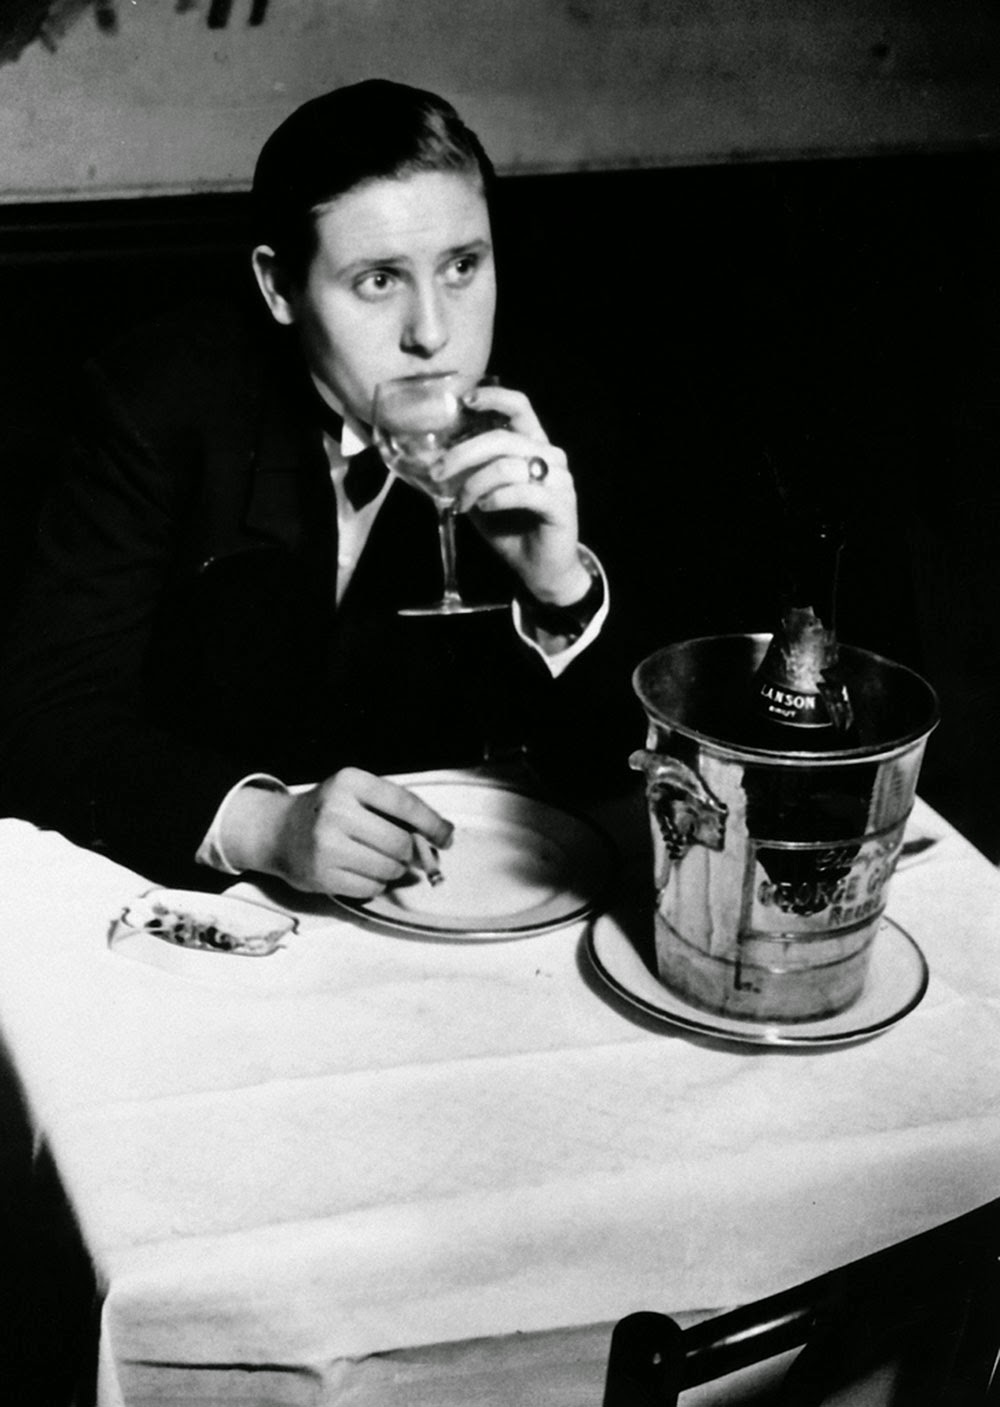 Young invert at Le Monocle, 1932.